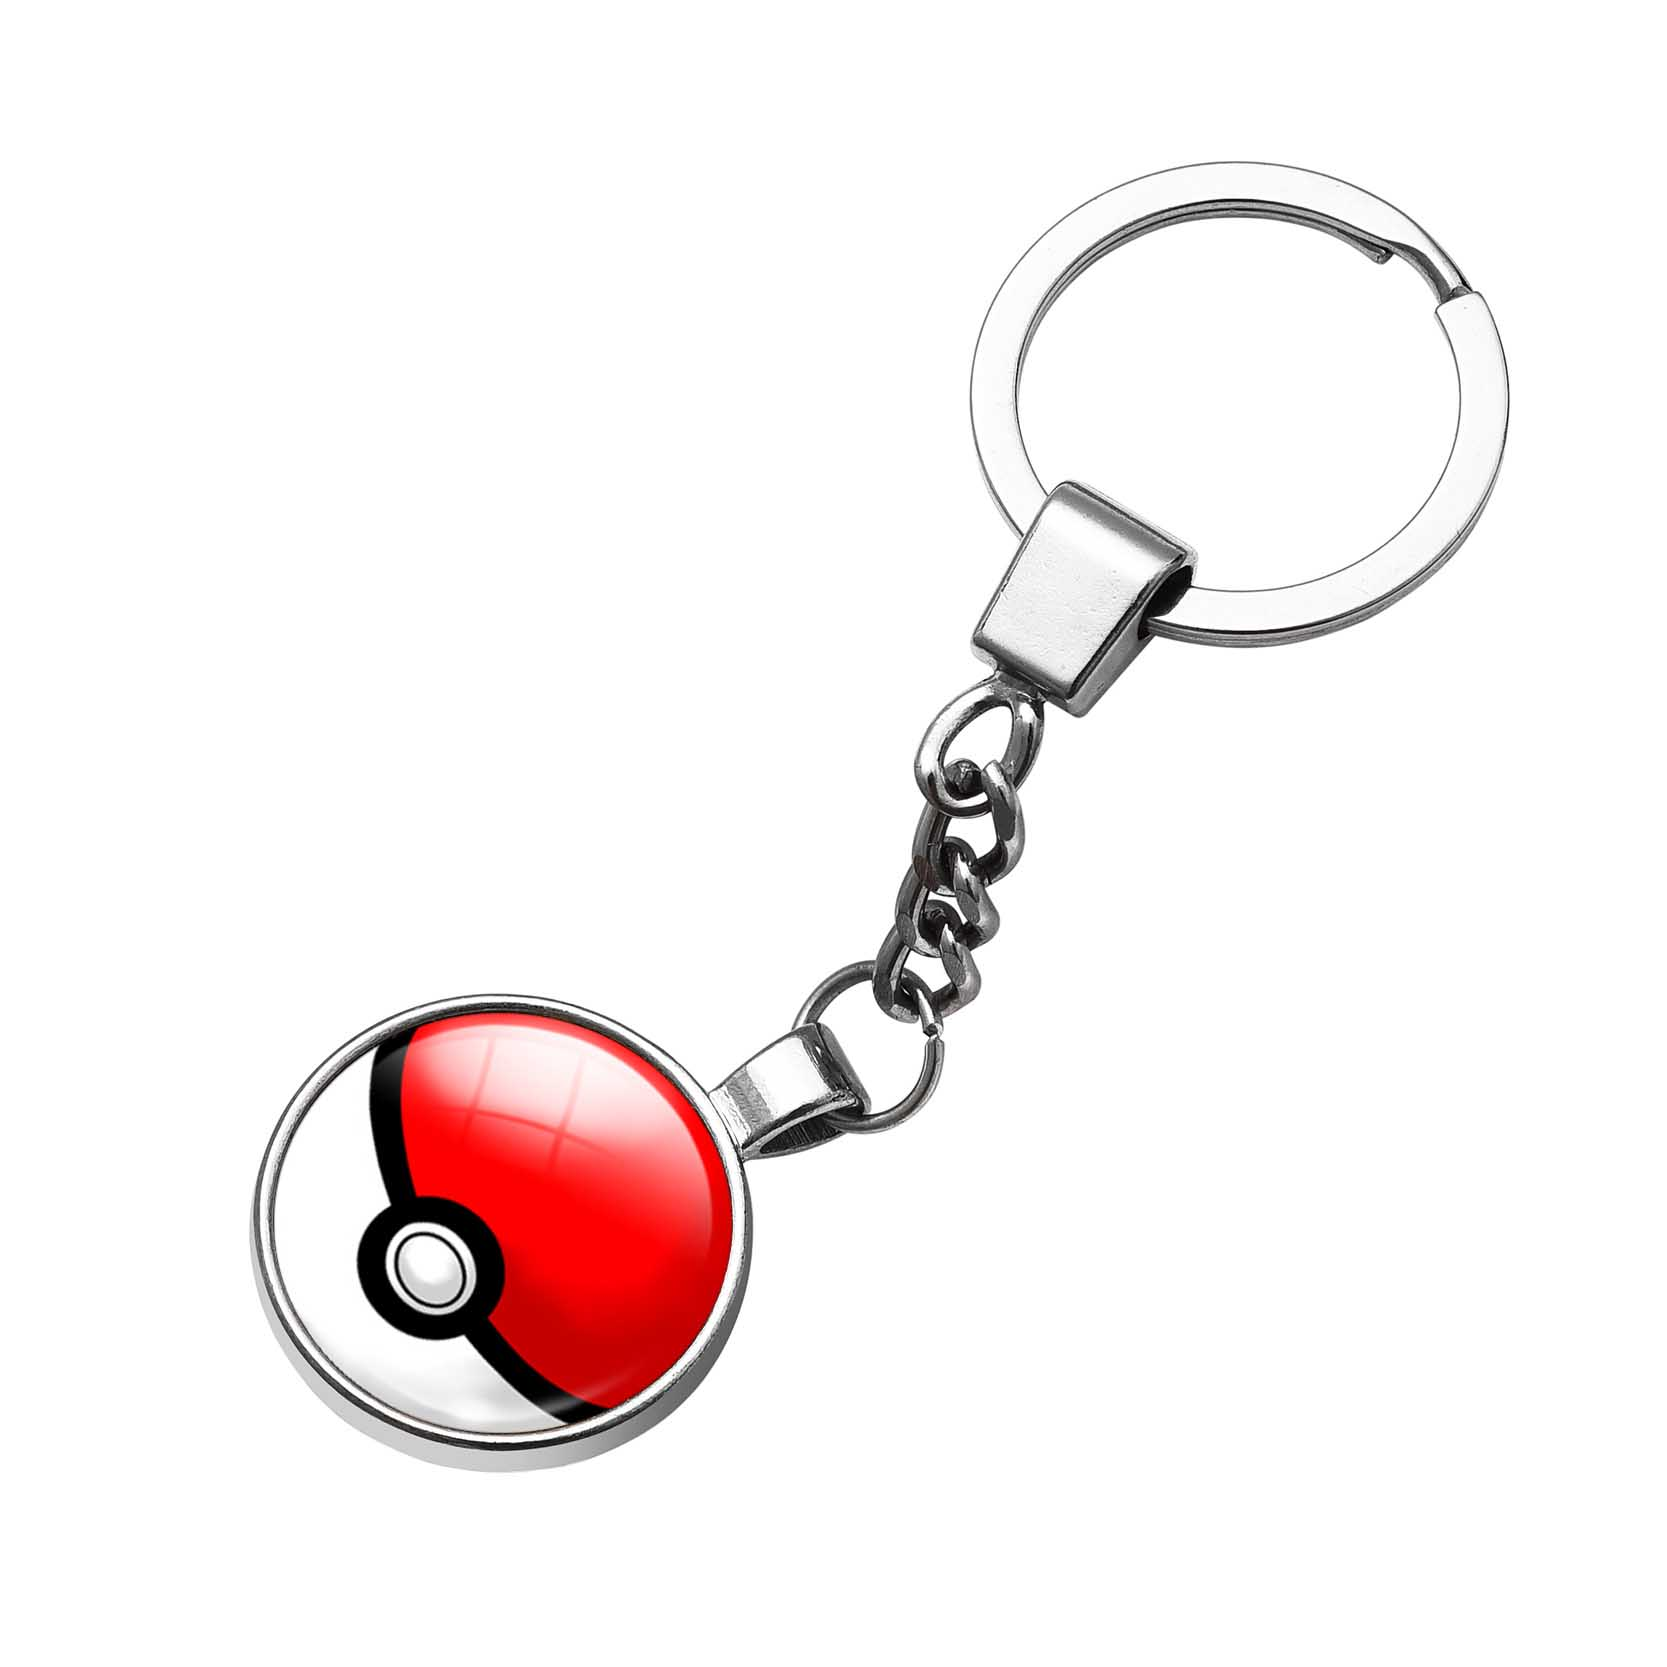 1 Pcs Double Side Glass Cabochon Pokemon Ball Pendant Keychain Anime Action Figures Toys PokeBall Super Master Ball Kids Gift